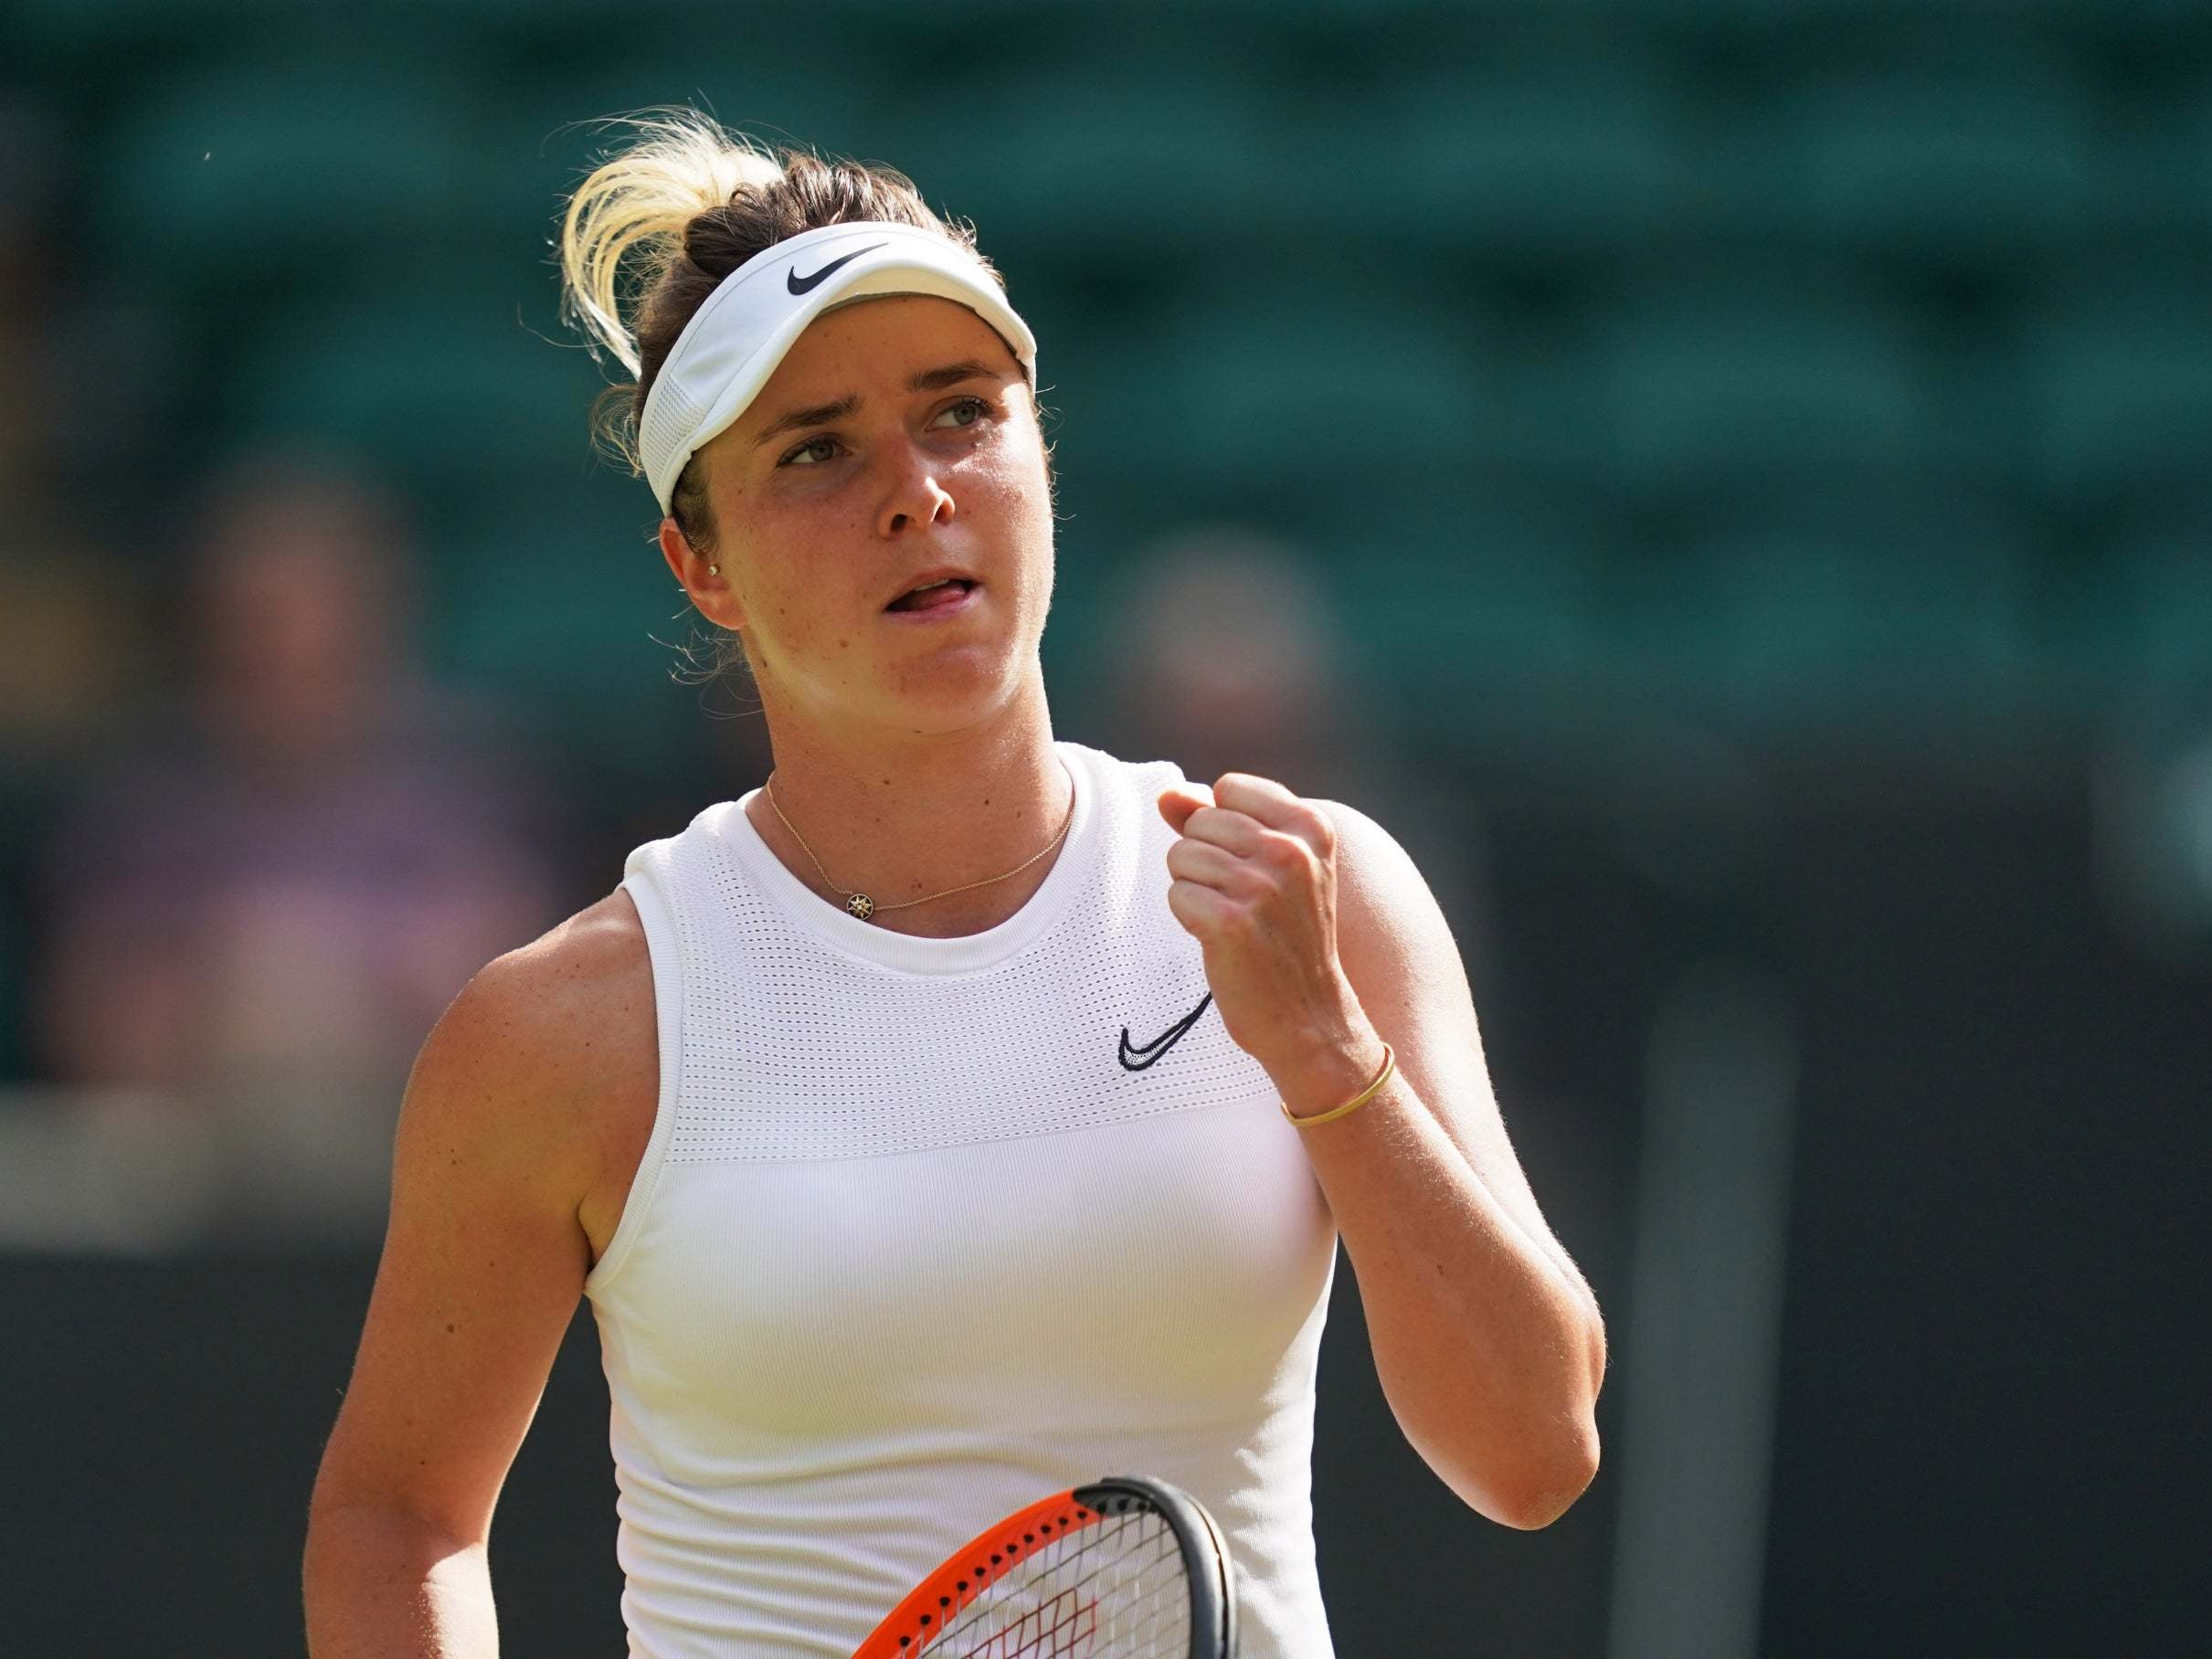 Wimbledon 2019: Elina Svitolina edges Karolina Muchova to book semi-final against Simona Halep